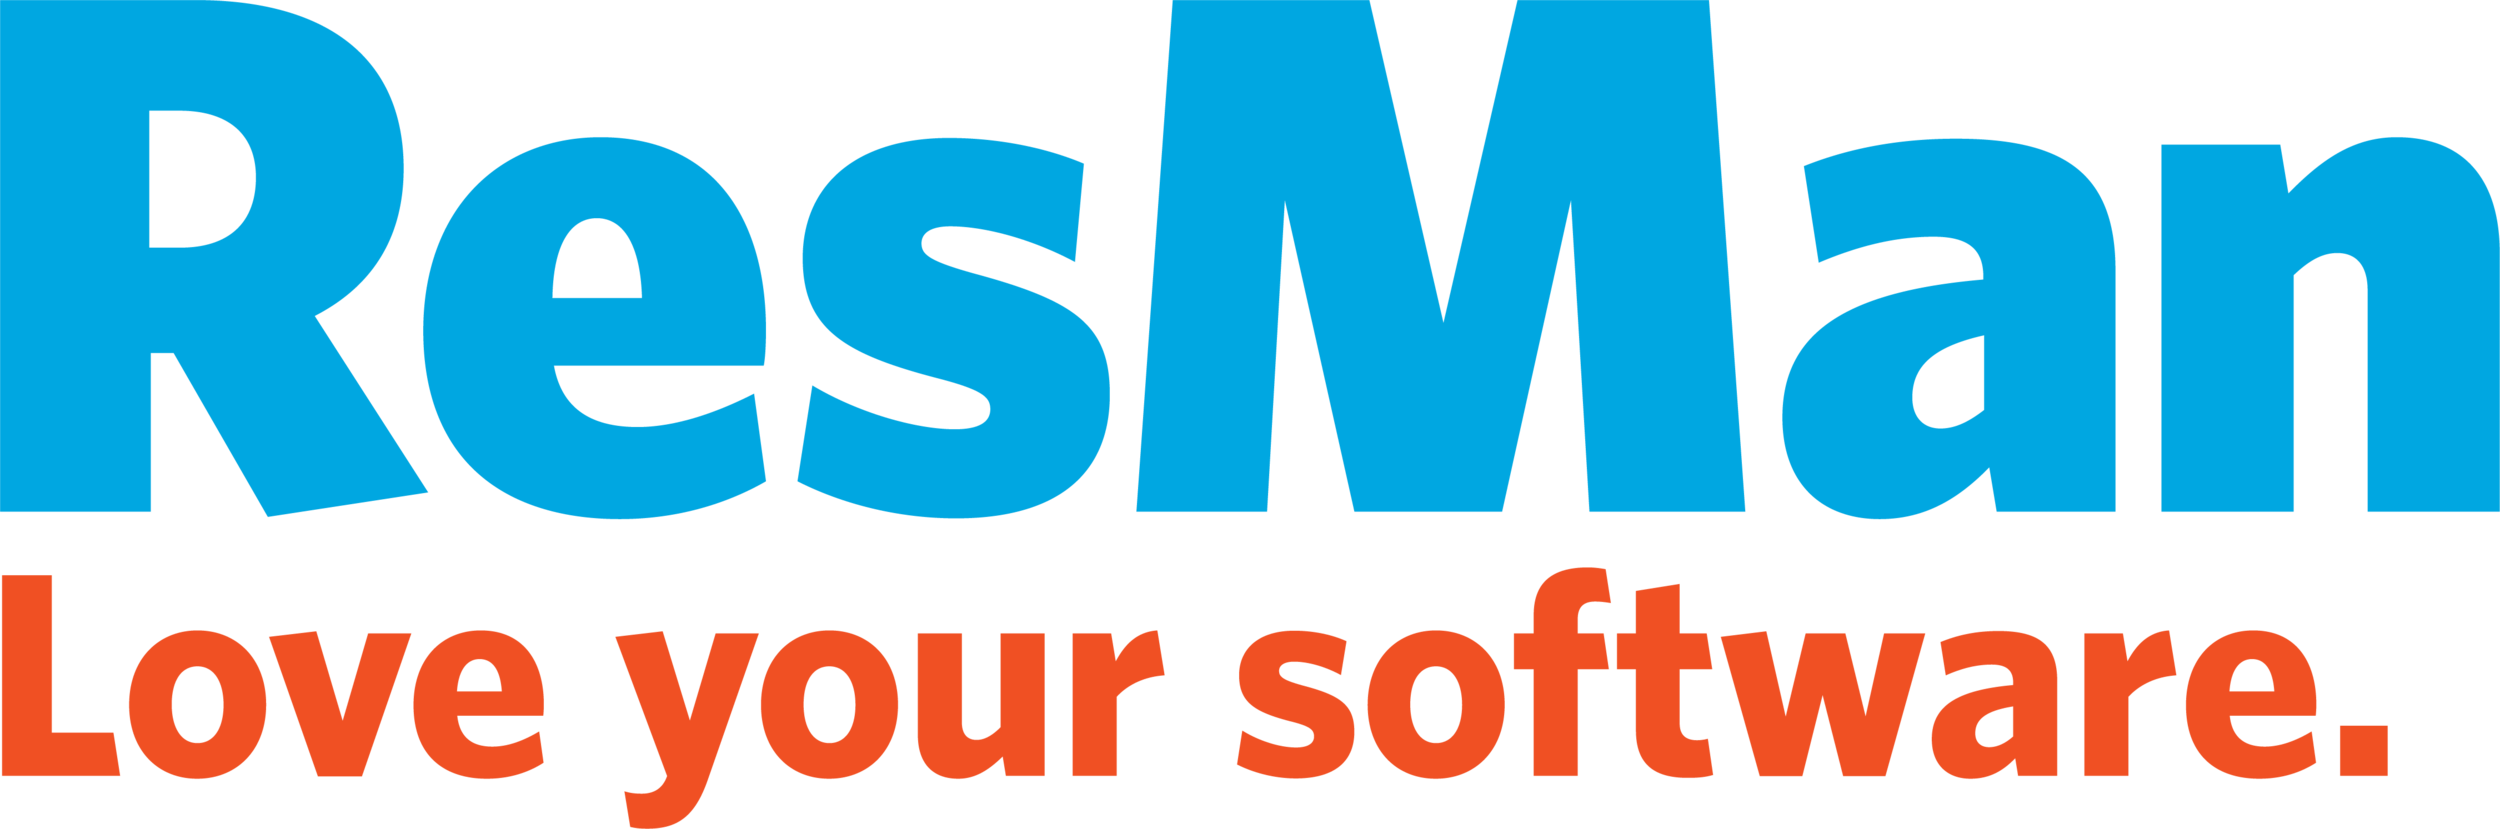 Resman-Main-Logo-With-Tagline-PMS_LARGE.png